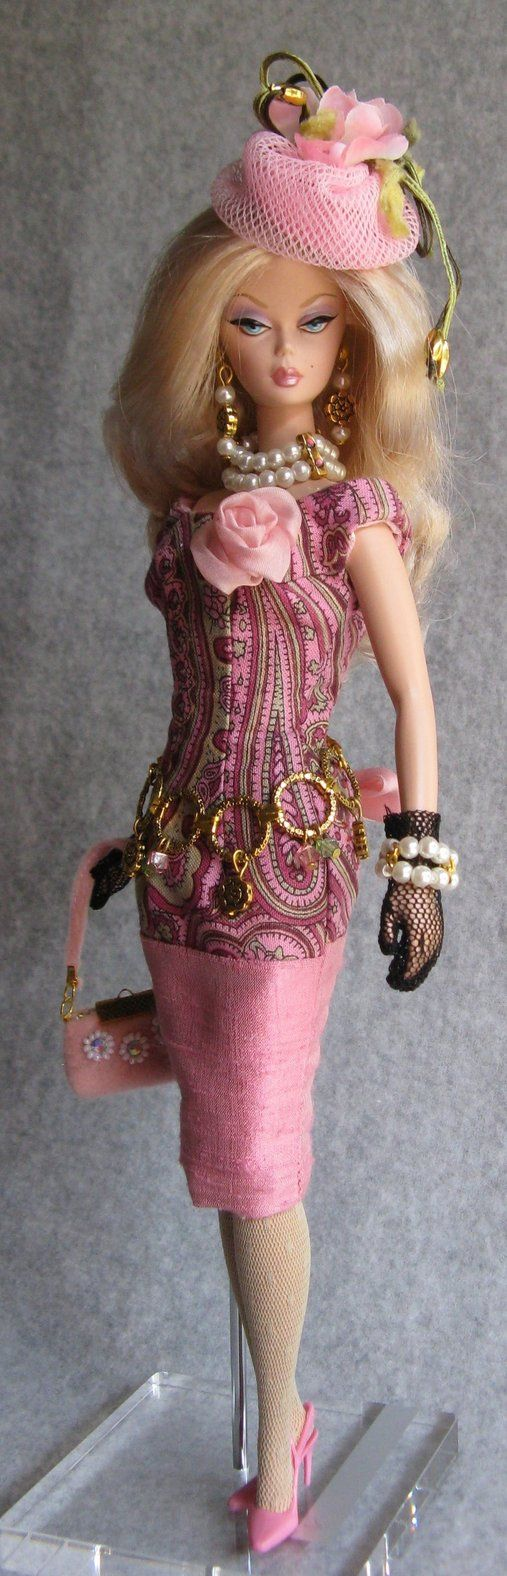 Pink handmade doll dress for silkstone BArbie by Twinkling-Stardust on DeviantArt